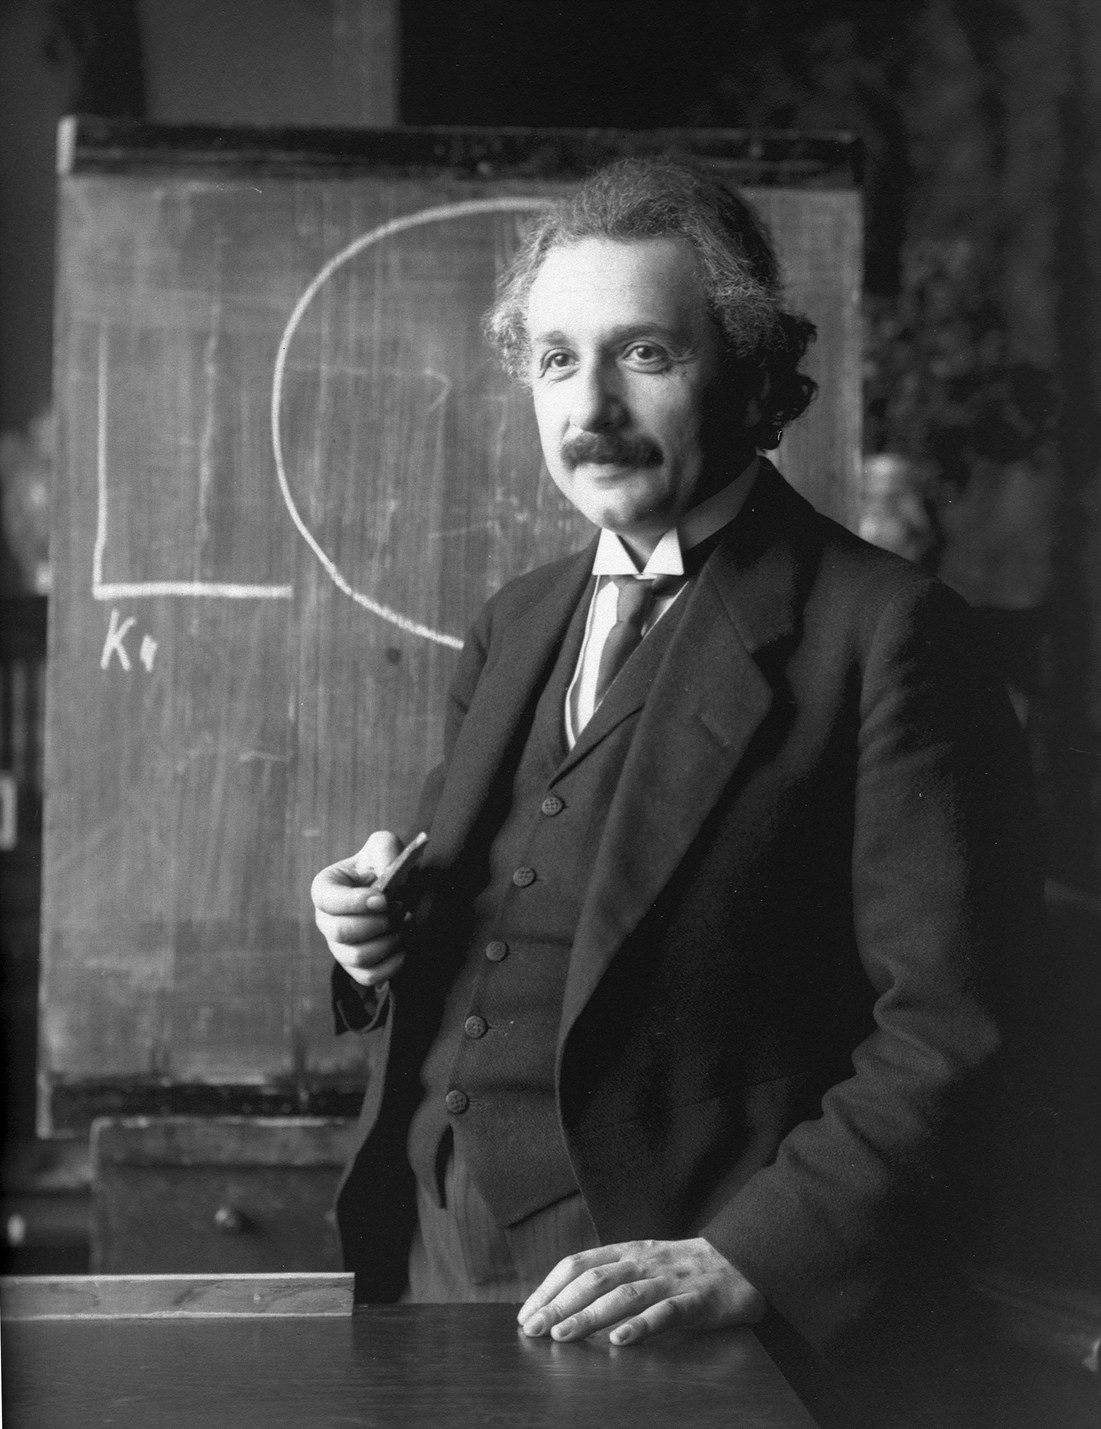 Albert Einstein 1921-ben (Fotó: Photo12/UIG/Getty Images)